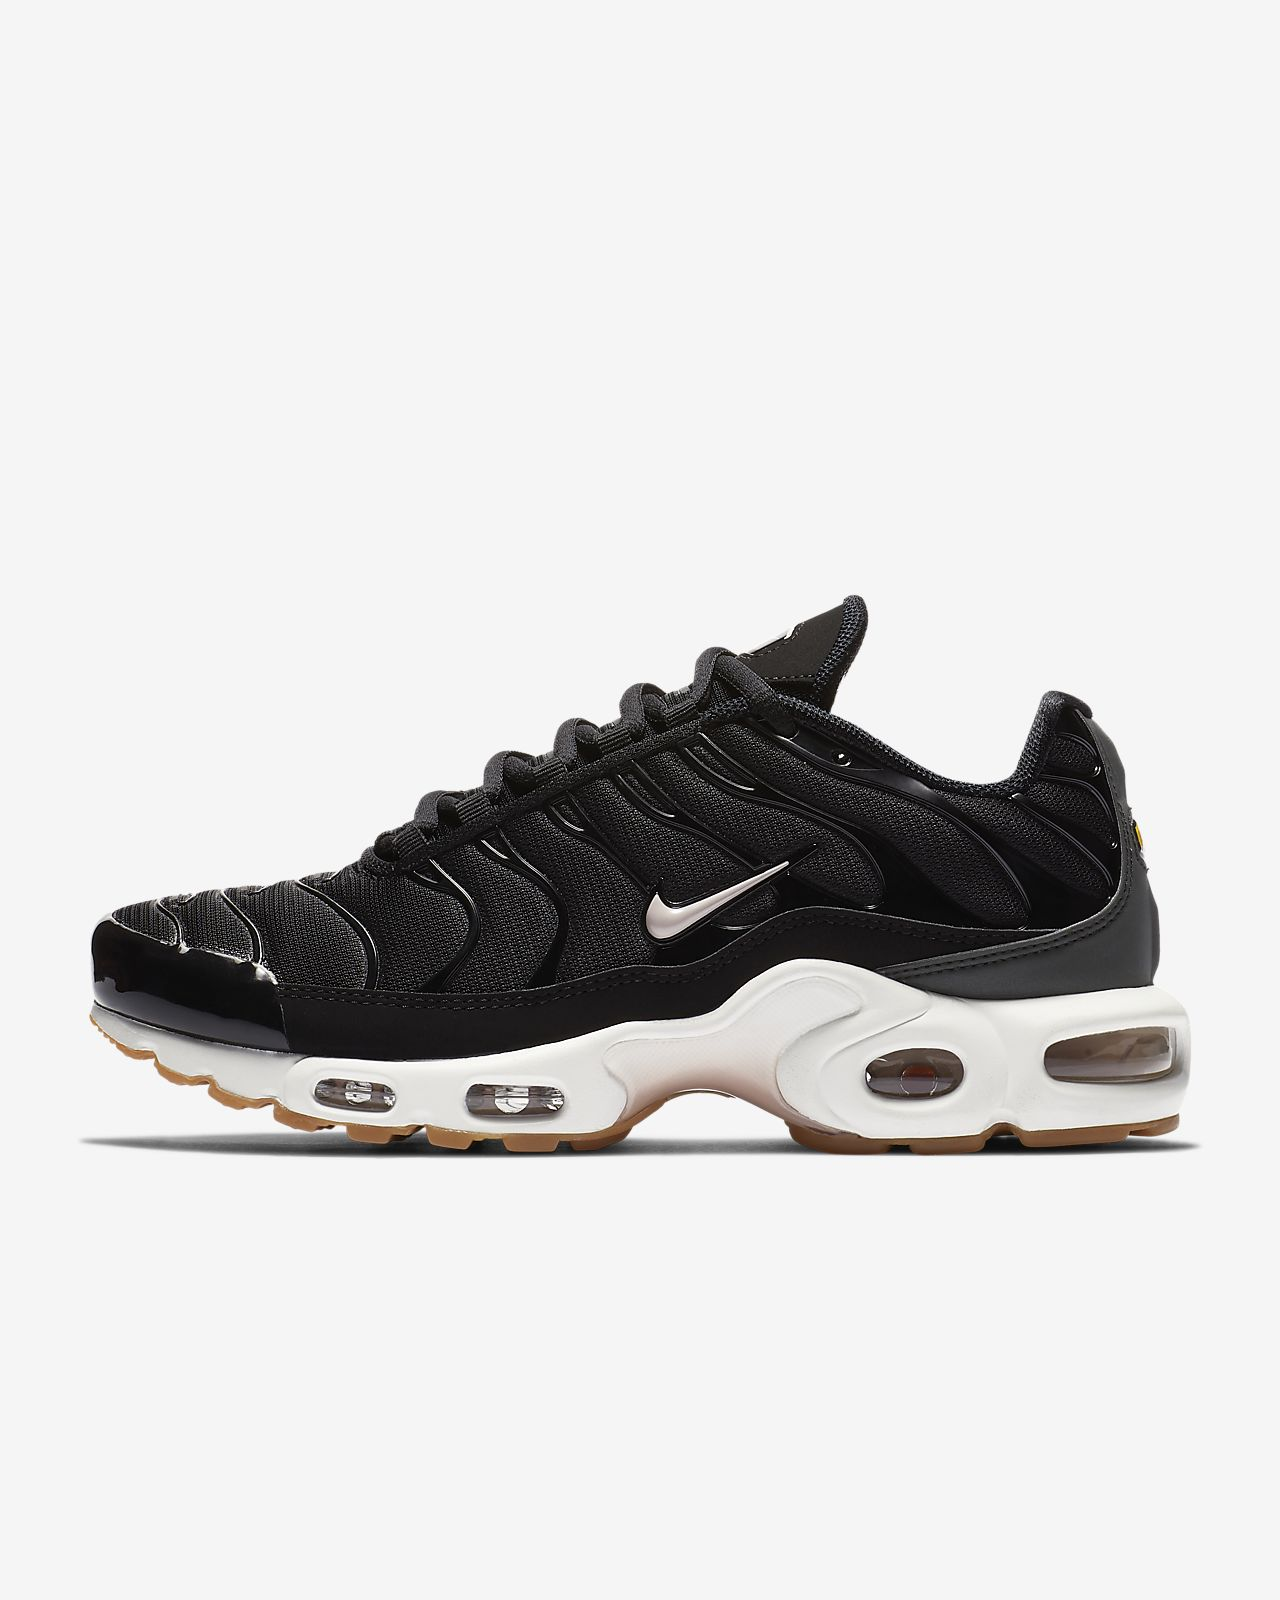 Nike Air Max Plus TN Allblack 604133 050 | OUTBACK Sylt